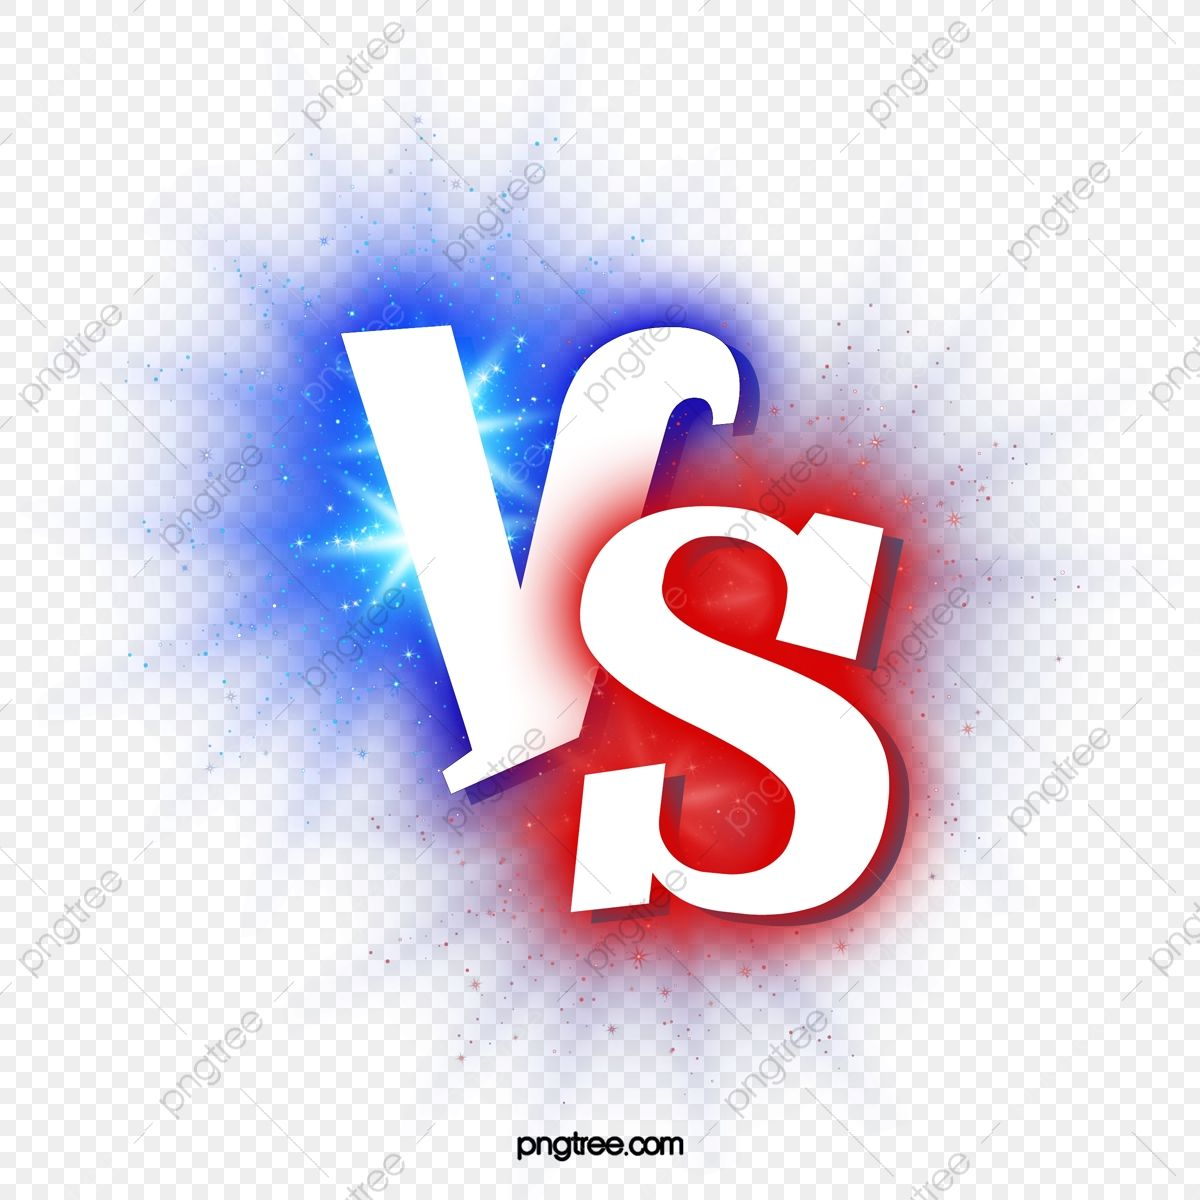 Special Effects Creative Vs Elements Duel Pk Luminescence Png Transparent Clipart Image And Psd File For Free Download Clip Art Clipart Images Creative